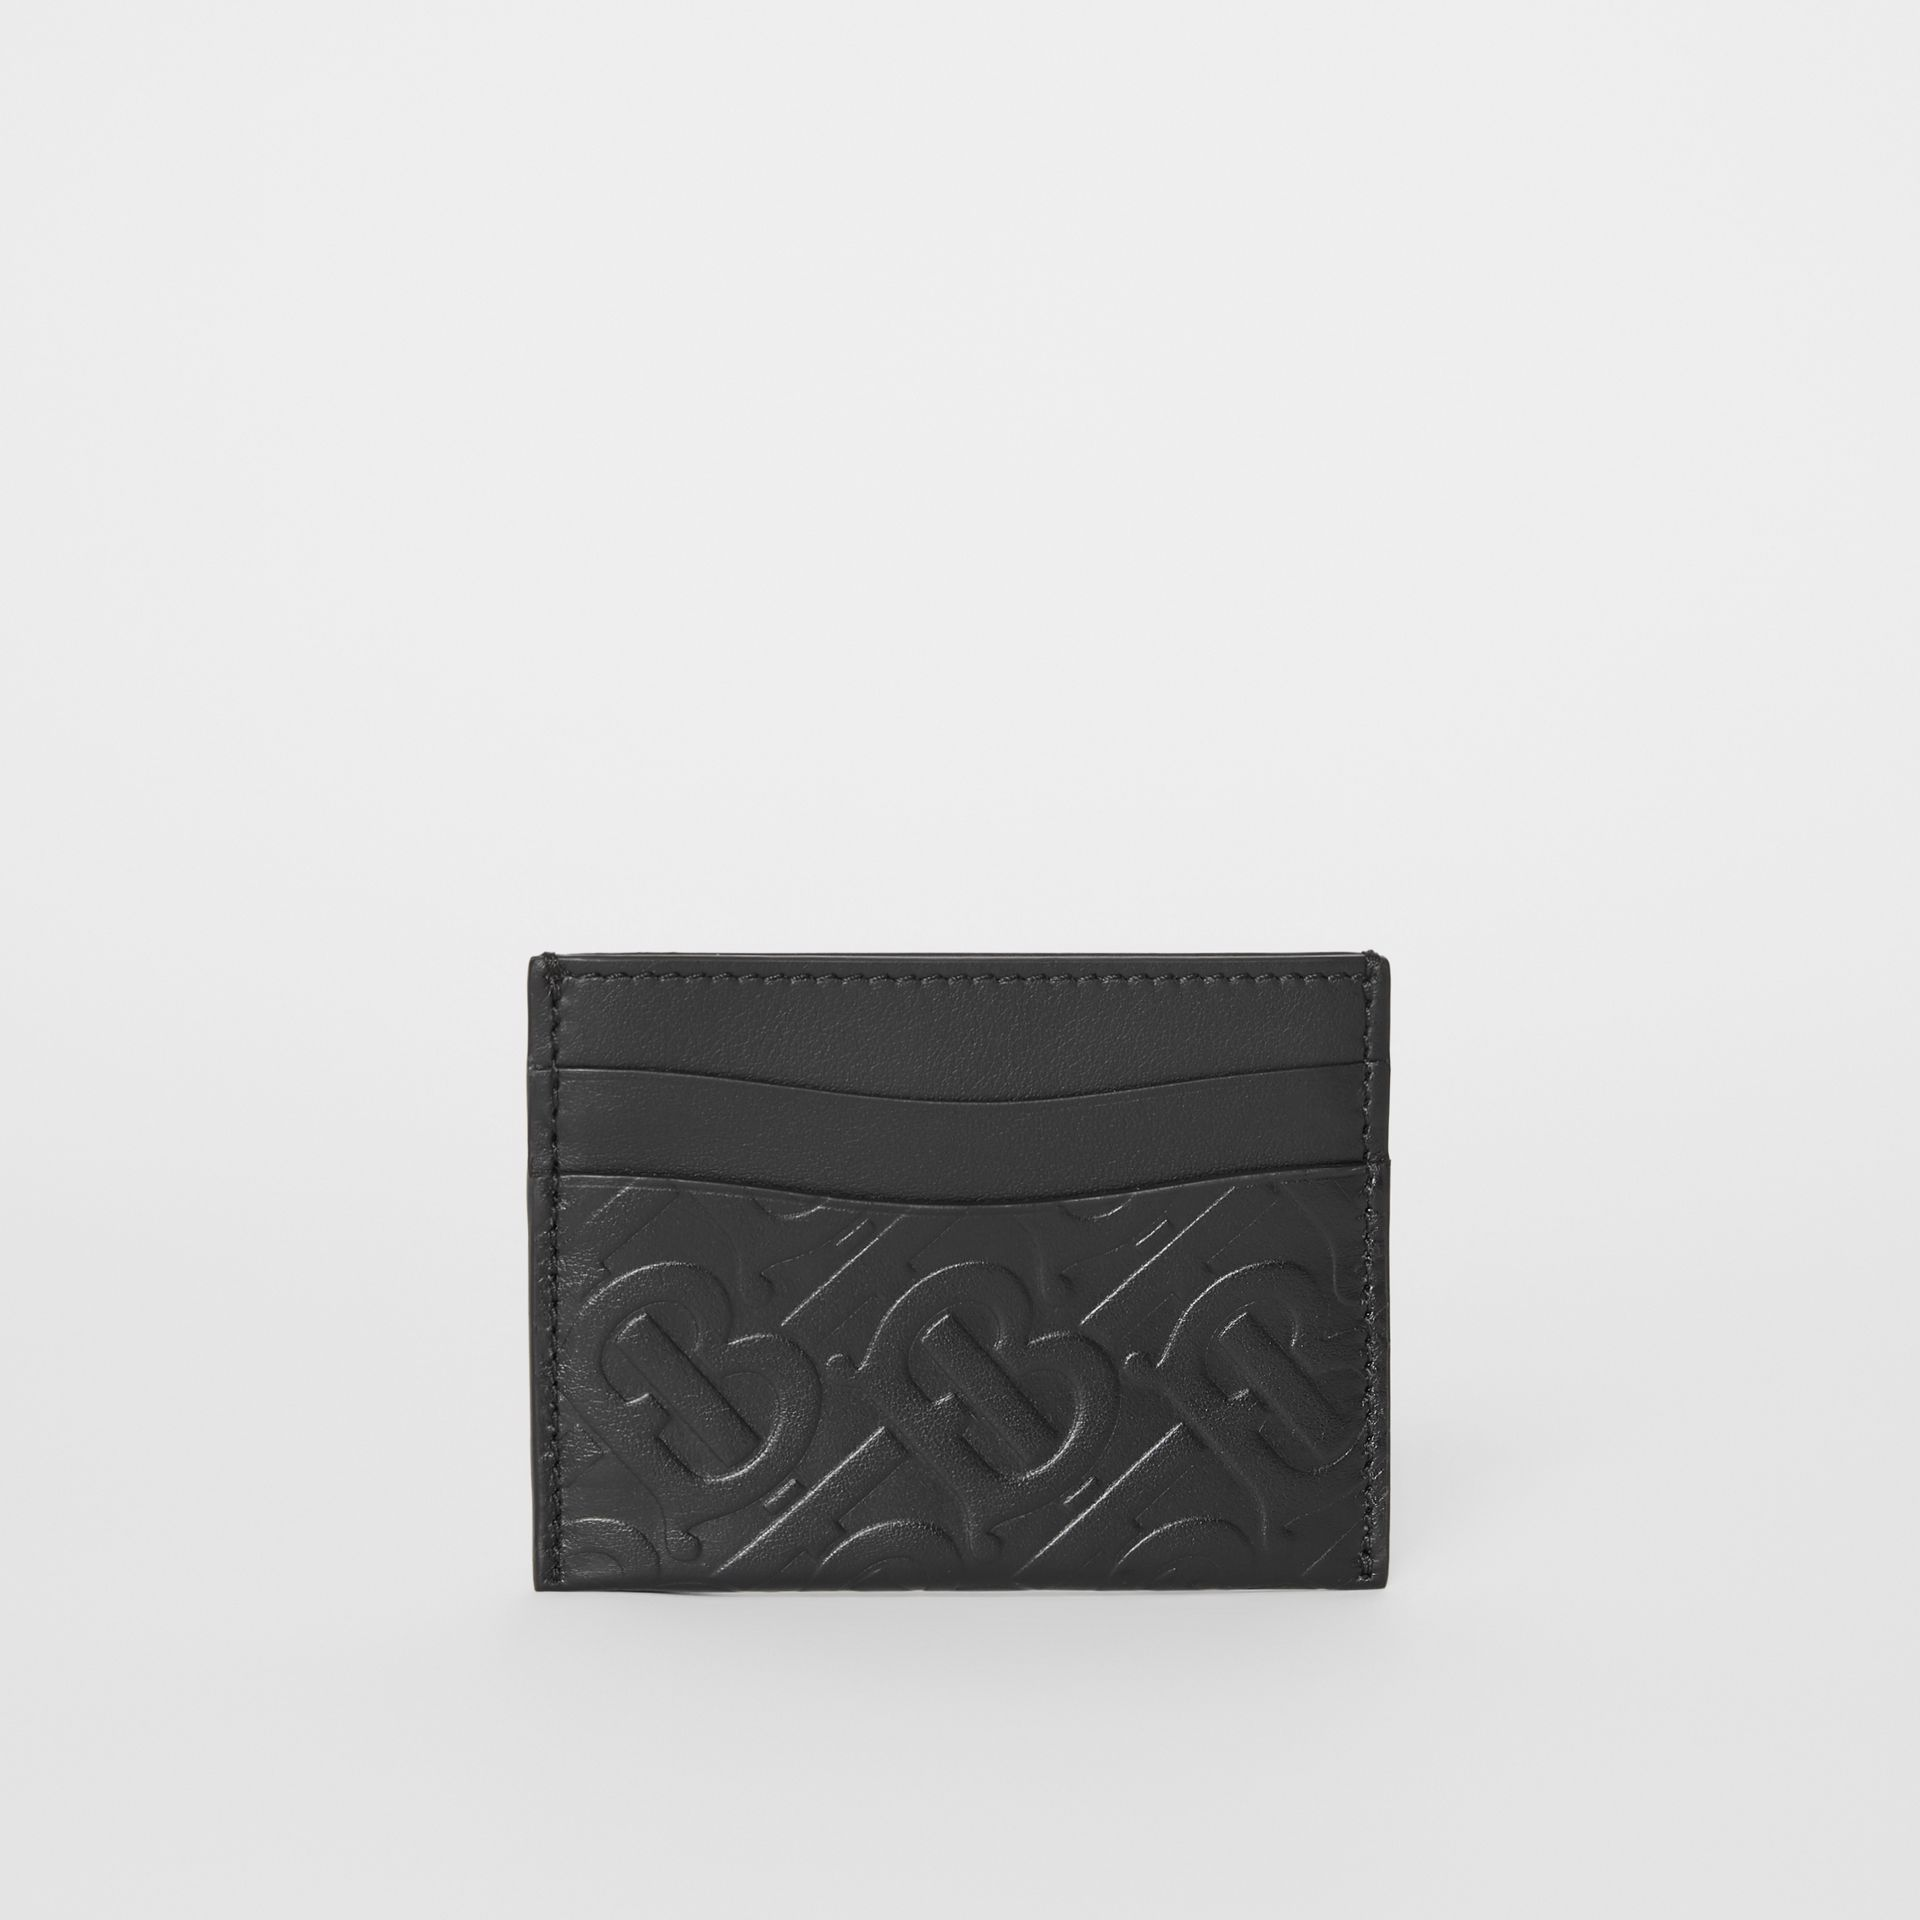 Monogram Leather Card Case in Black - Women | Burberry - gallery image 3